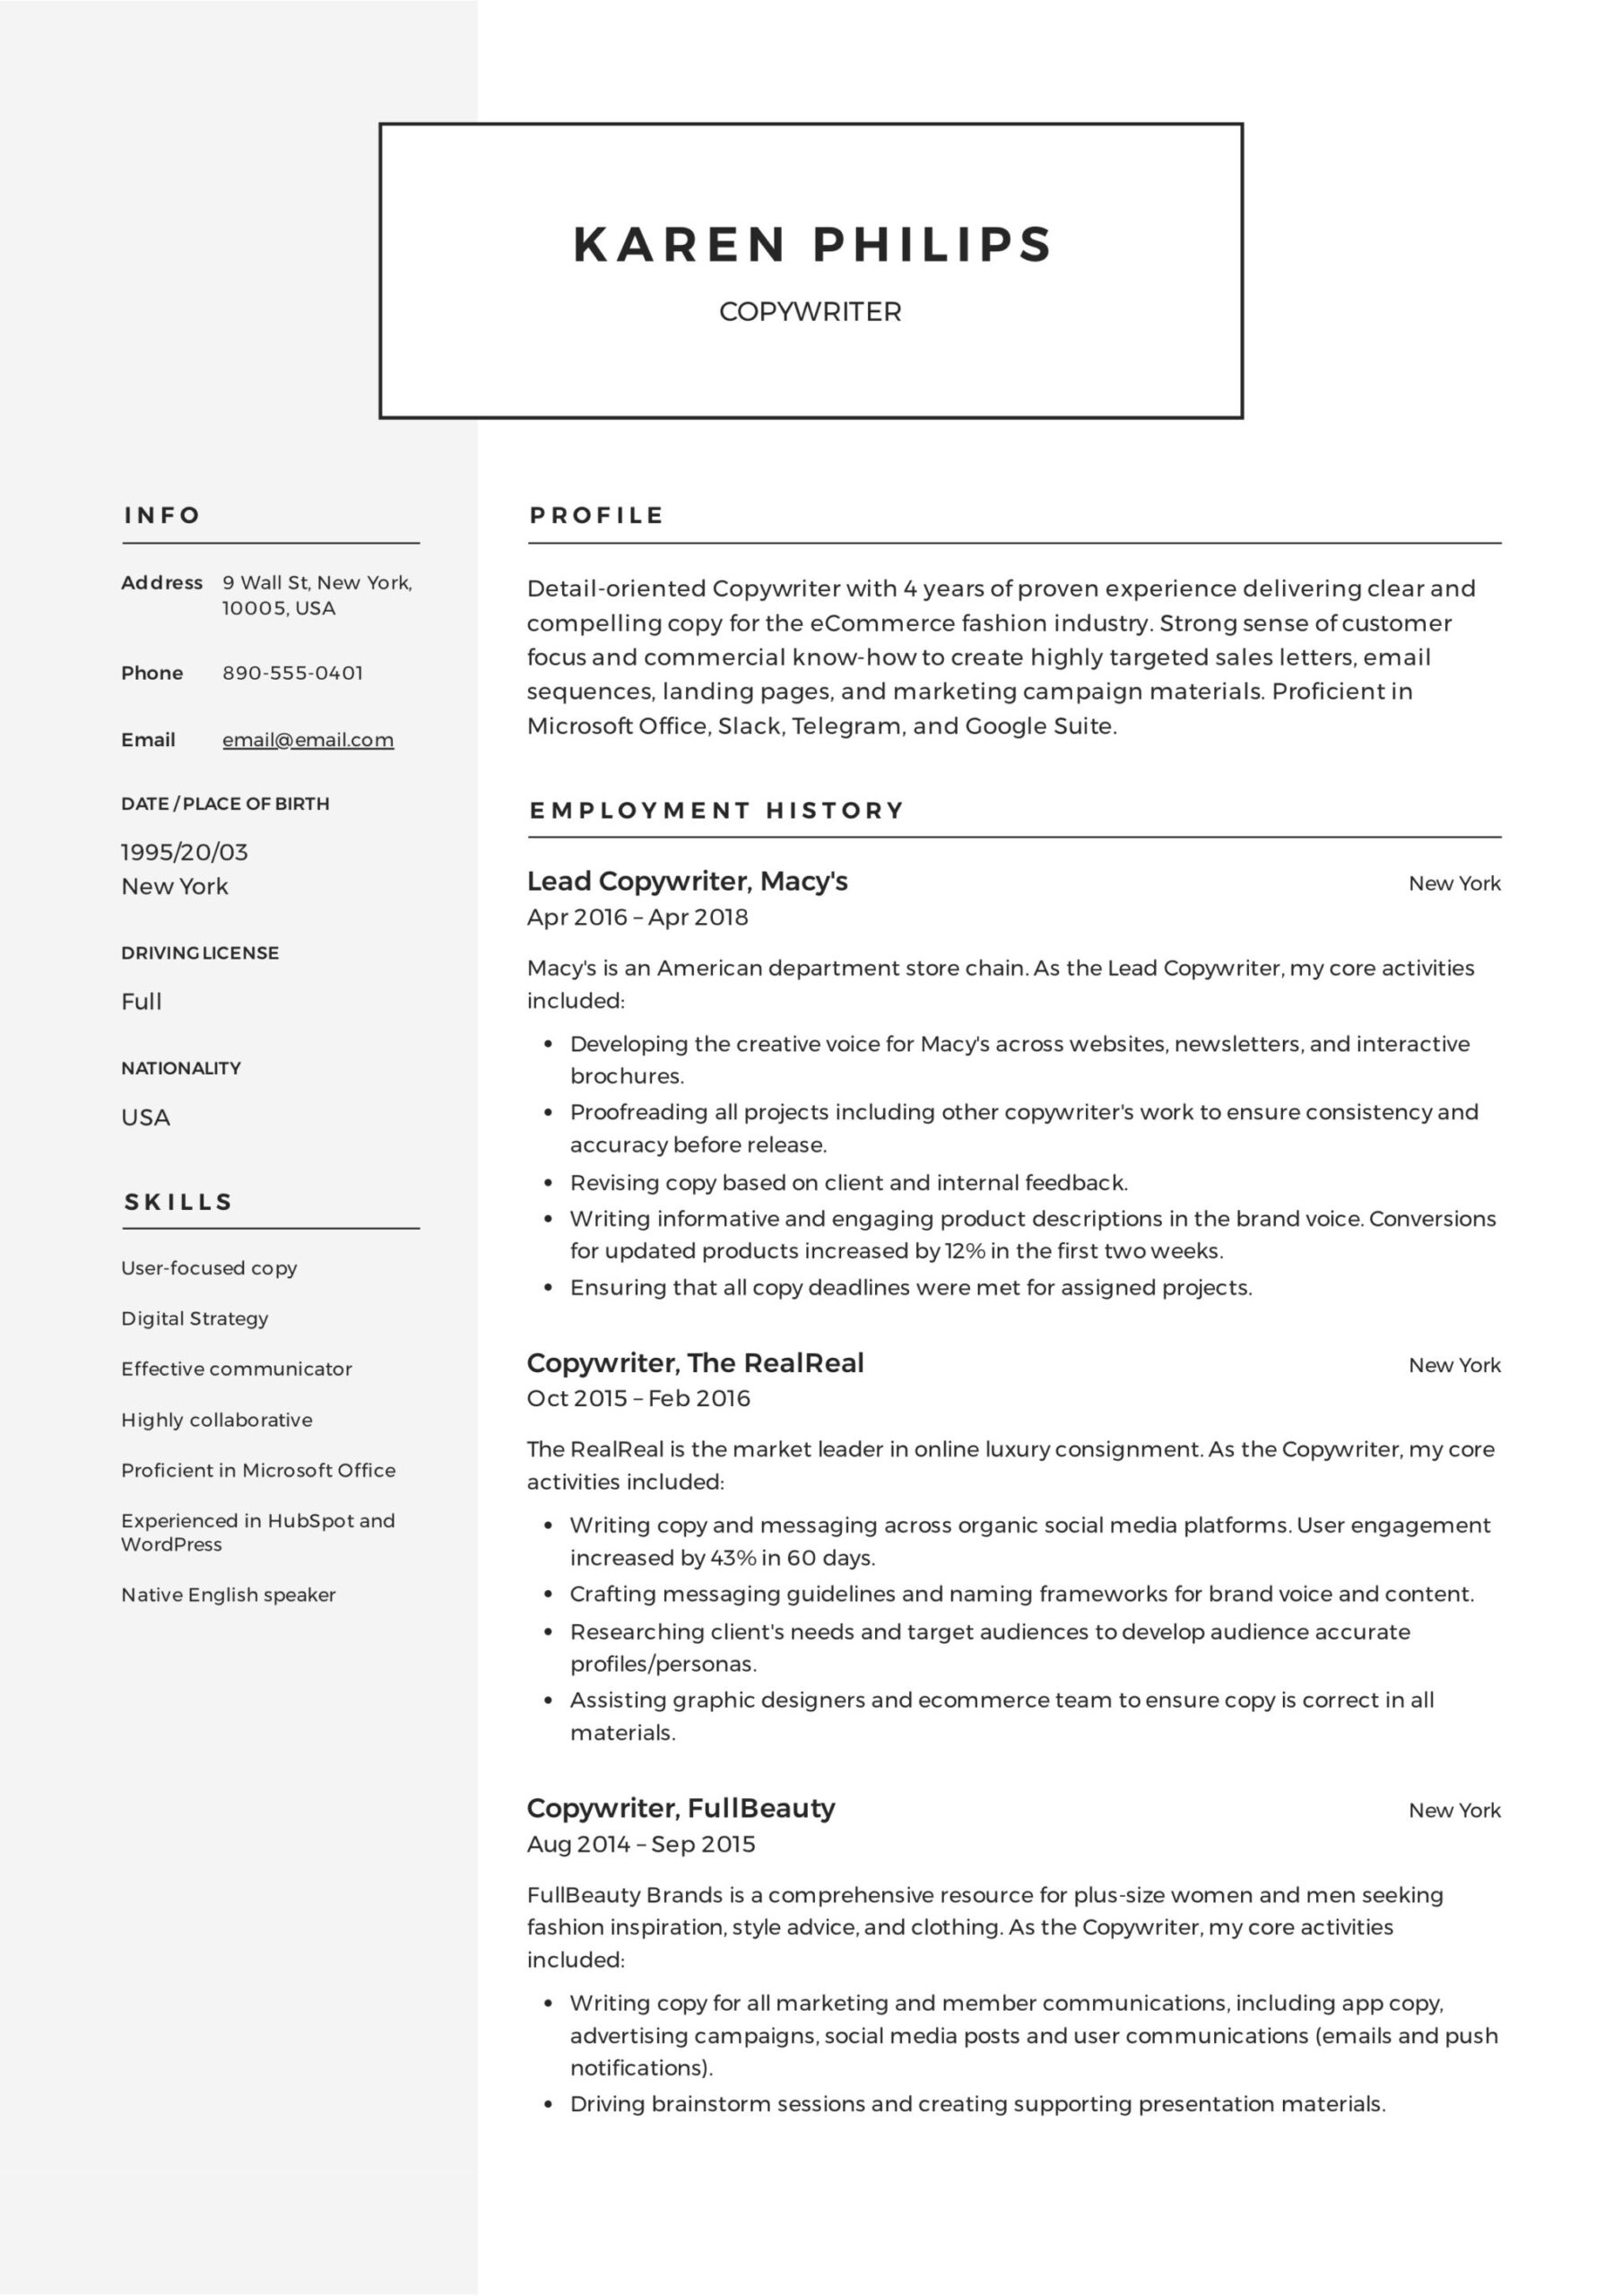 copywriter resume writing guide templates pdf entry level template rbt deli worker Resume Entry Level Copywriter Resume